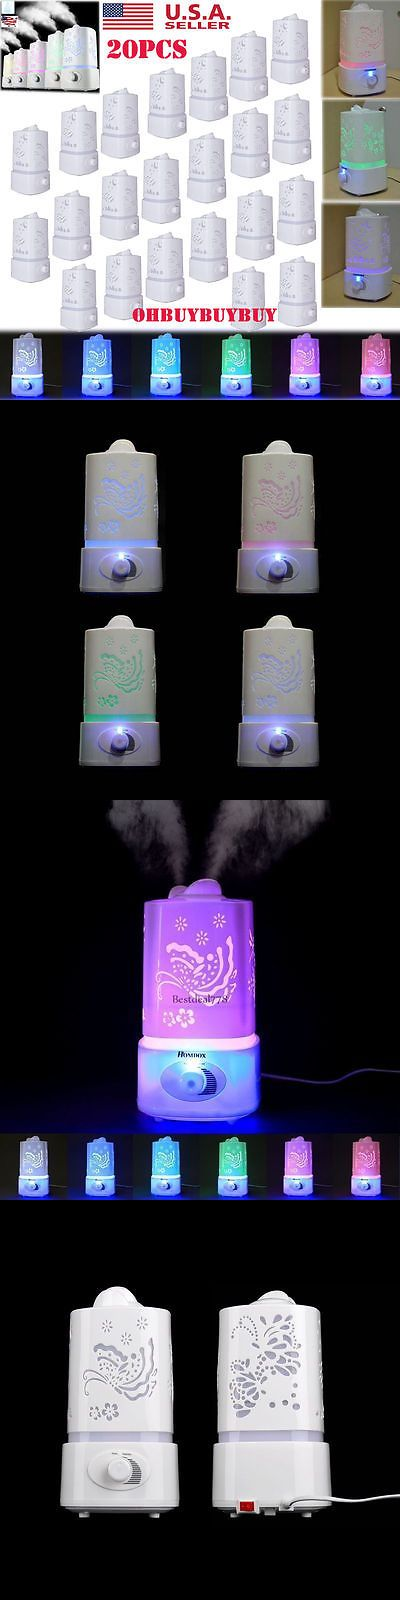 Humidifiers 71240: Lot 20 1.5L Ultrasonic Aroma Humidifier Air Diffuser Purifier Lonizer Atomizer V -> BUY IT NOW ONLY: $65.95 on eBay!